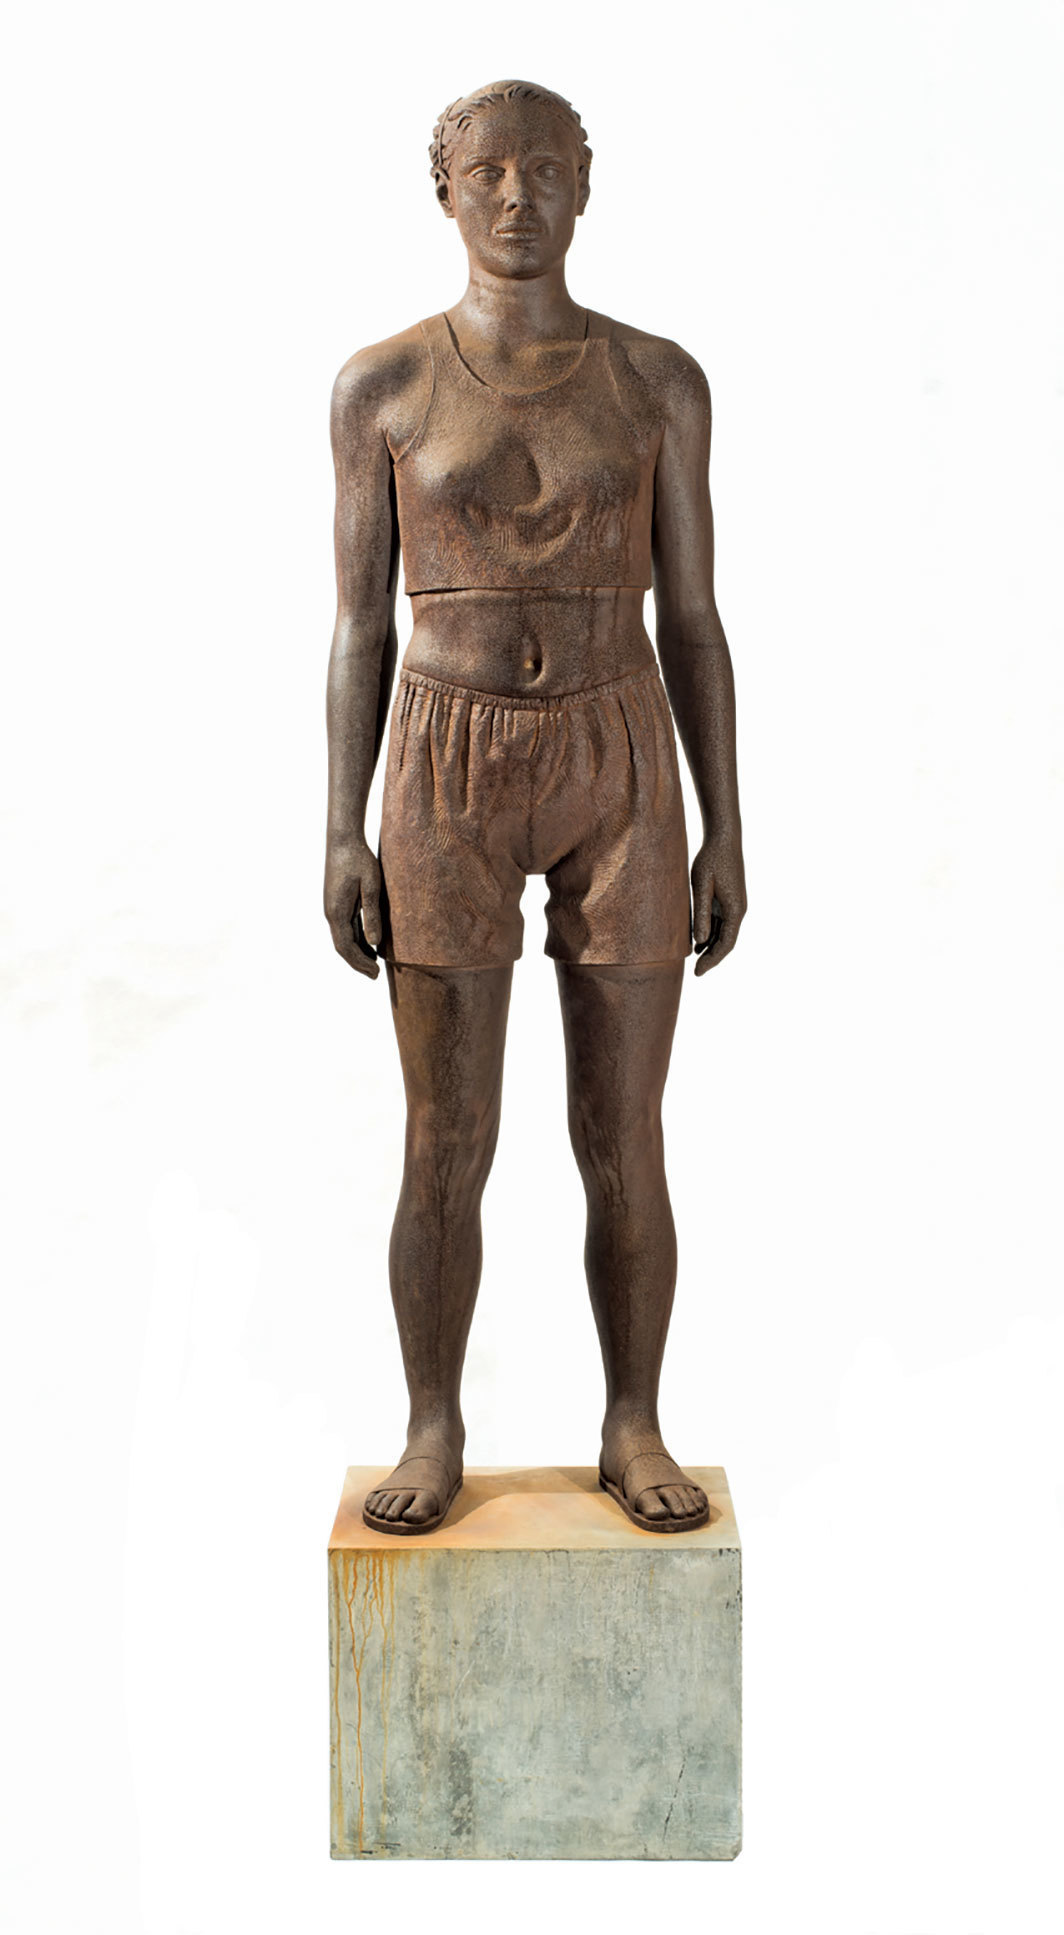 "Diana Moore, Full Figure No. II (Athlete), 1995, carbon steel, aluminum, 73 × 22 × 16"". Photo: Allan Stone Projects"